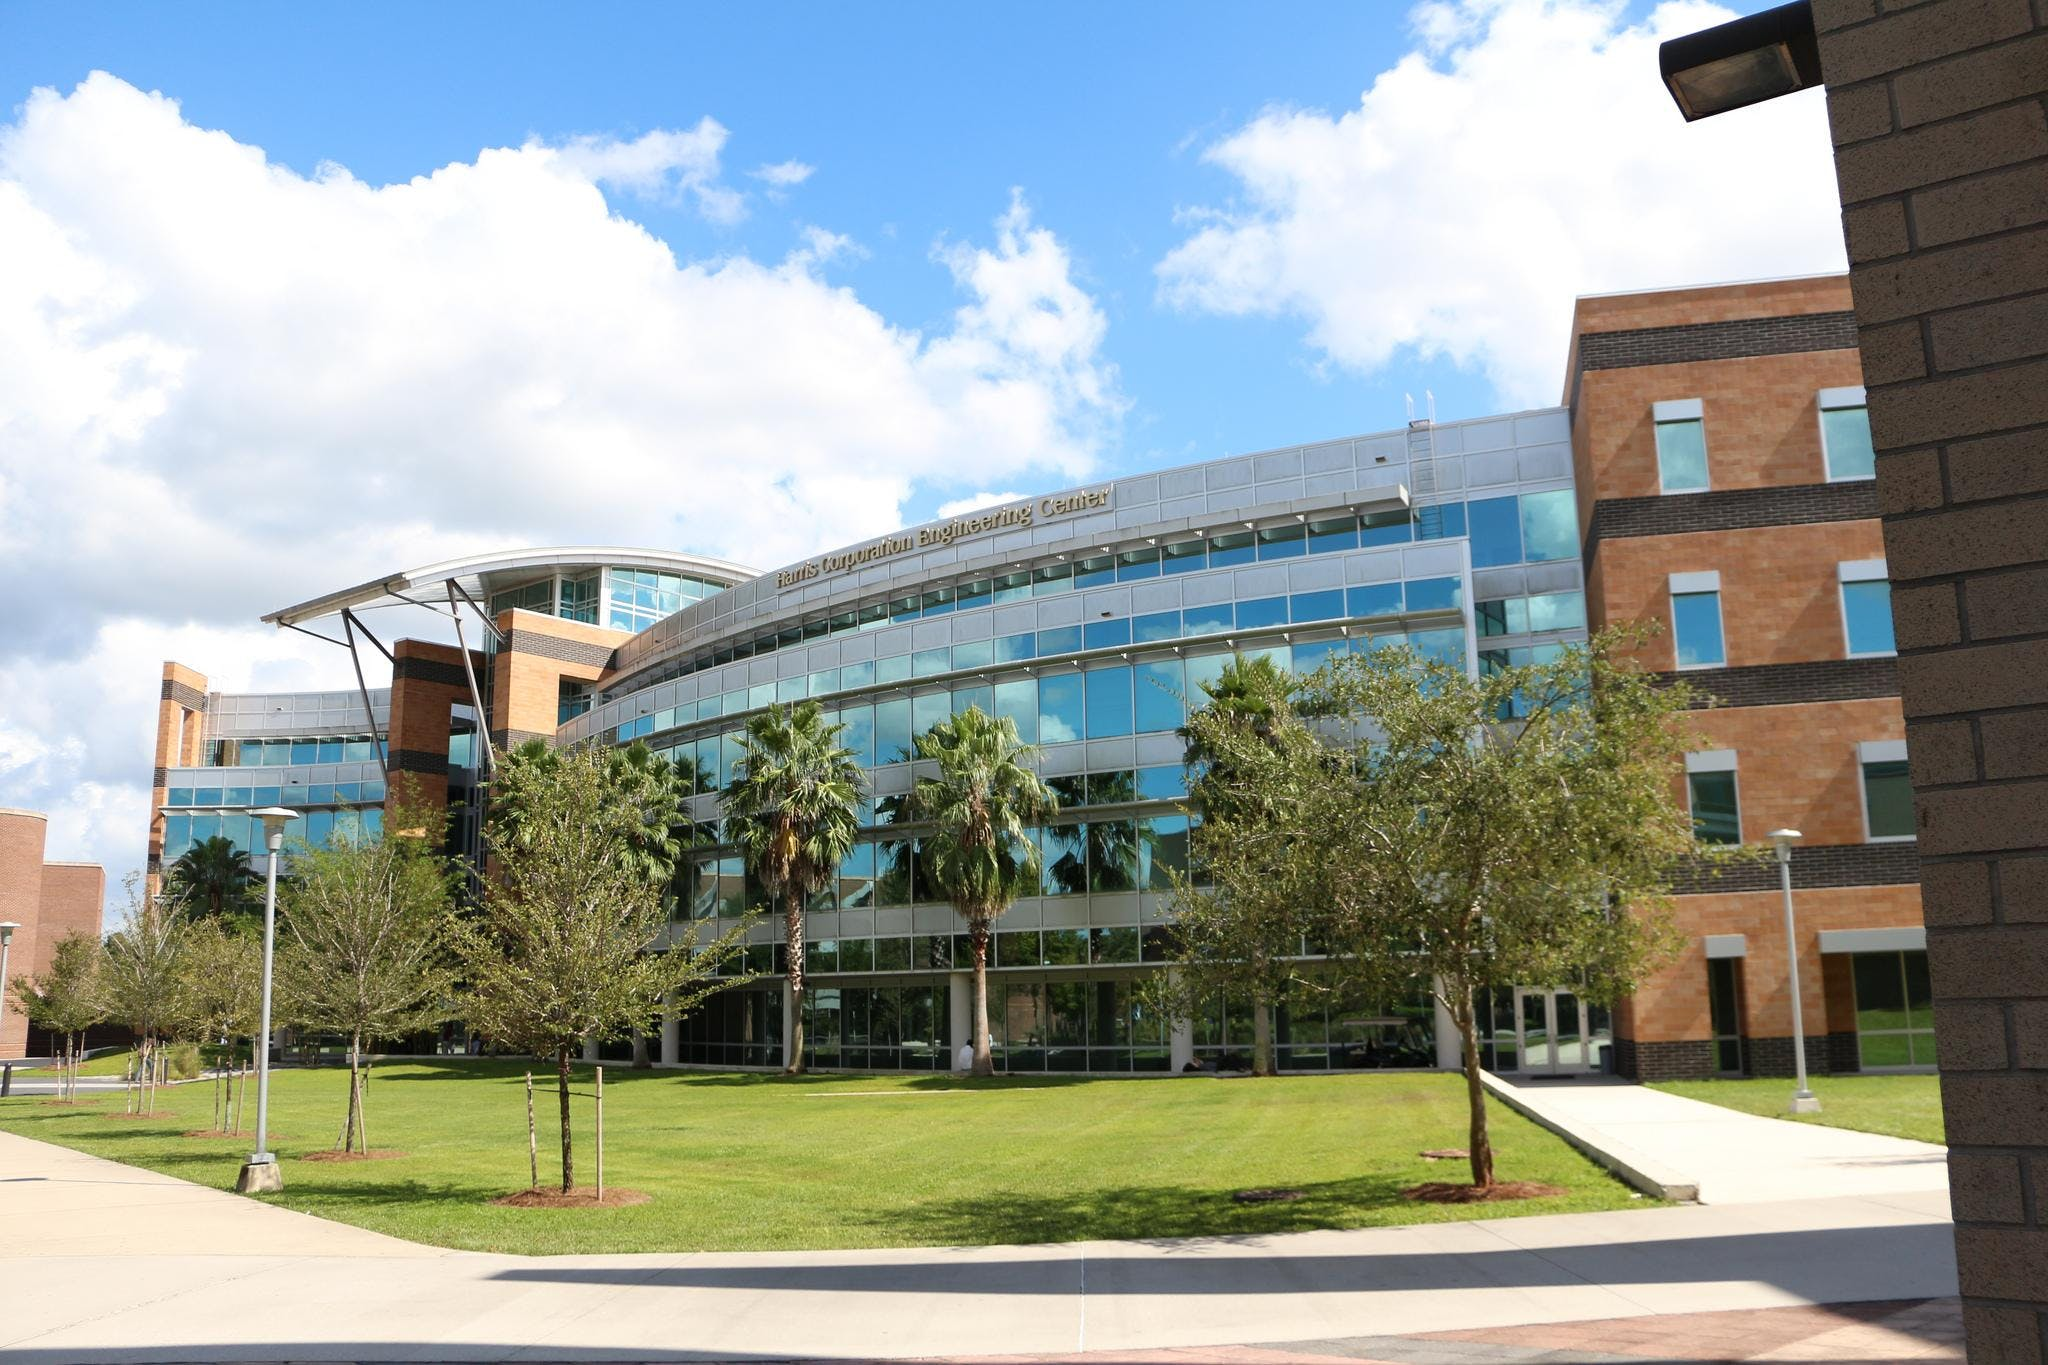 University of Central Florida - Admission Requirements, SAT